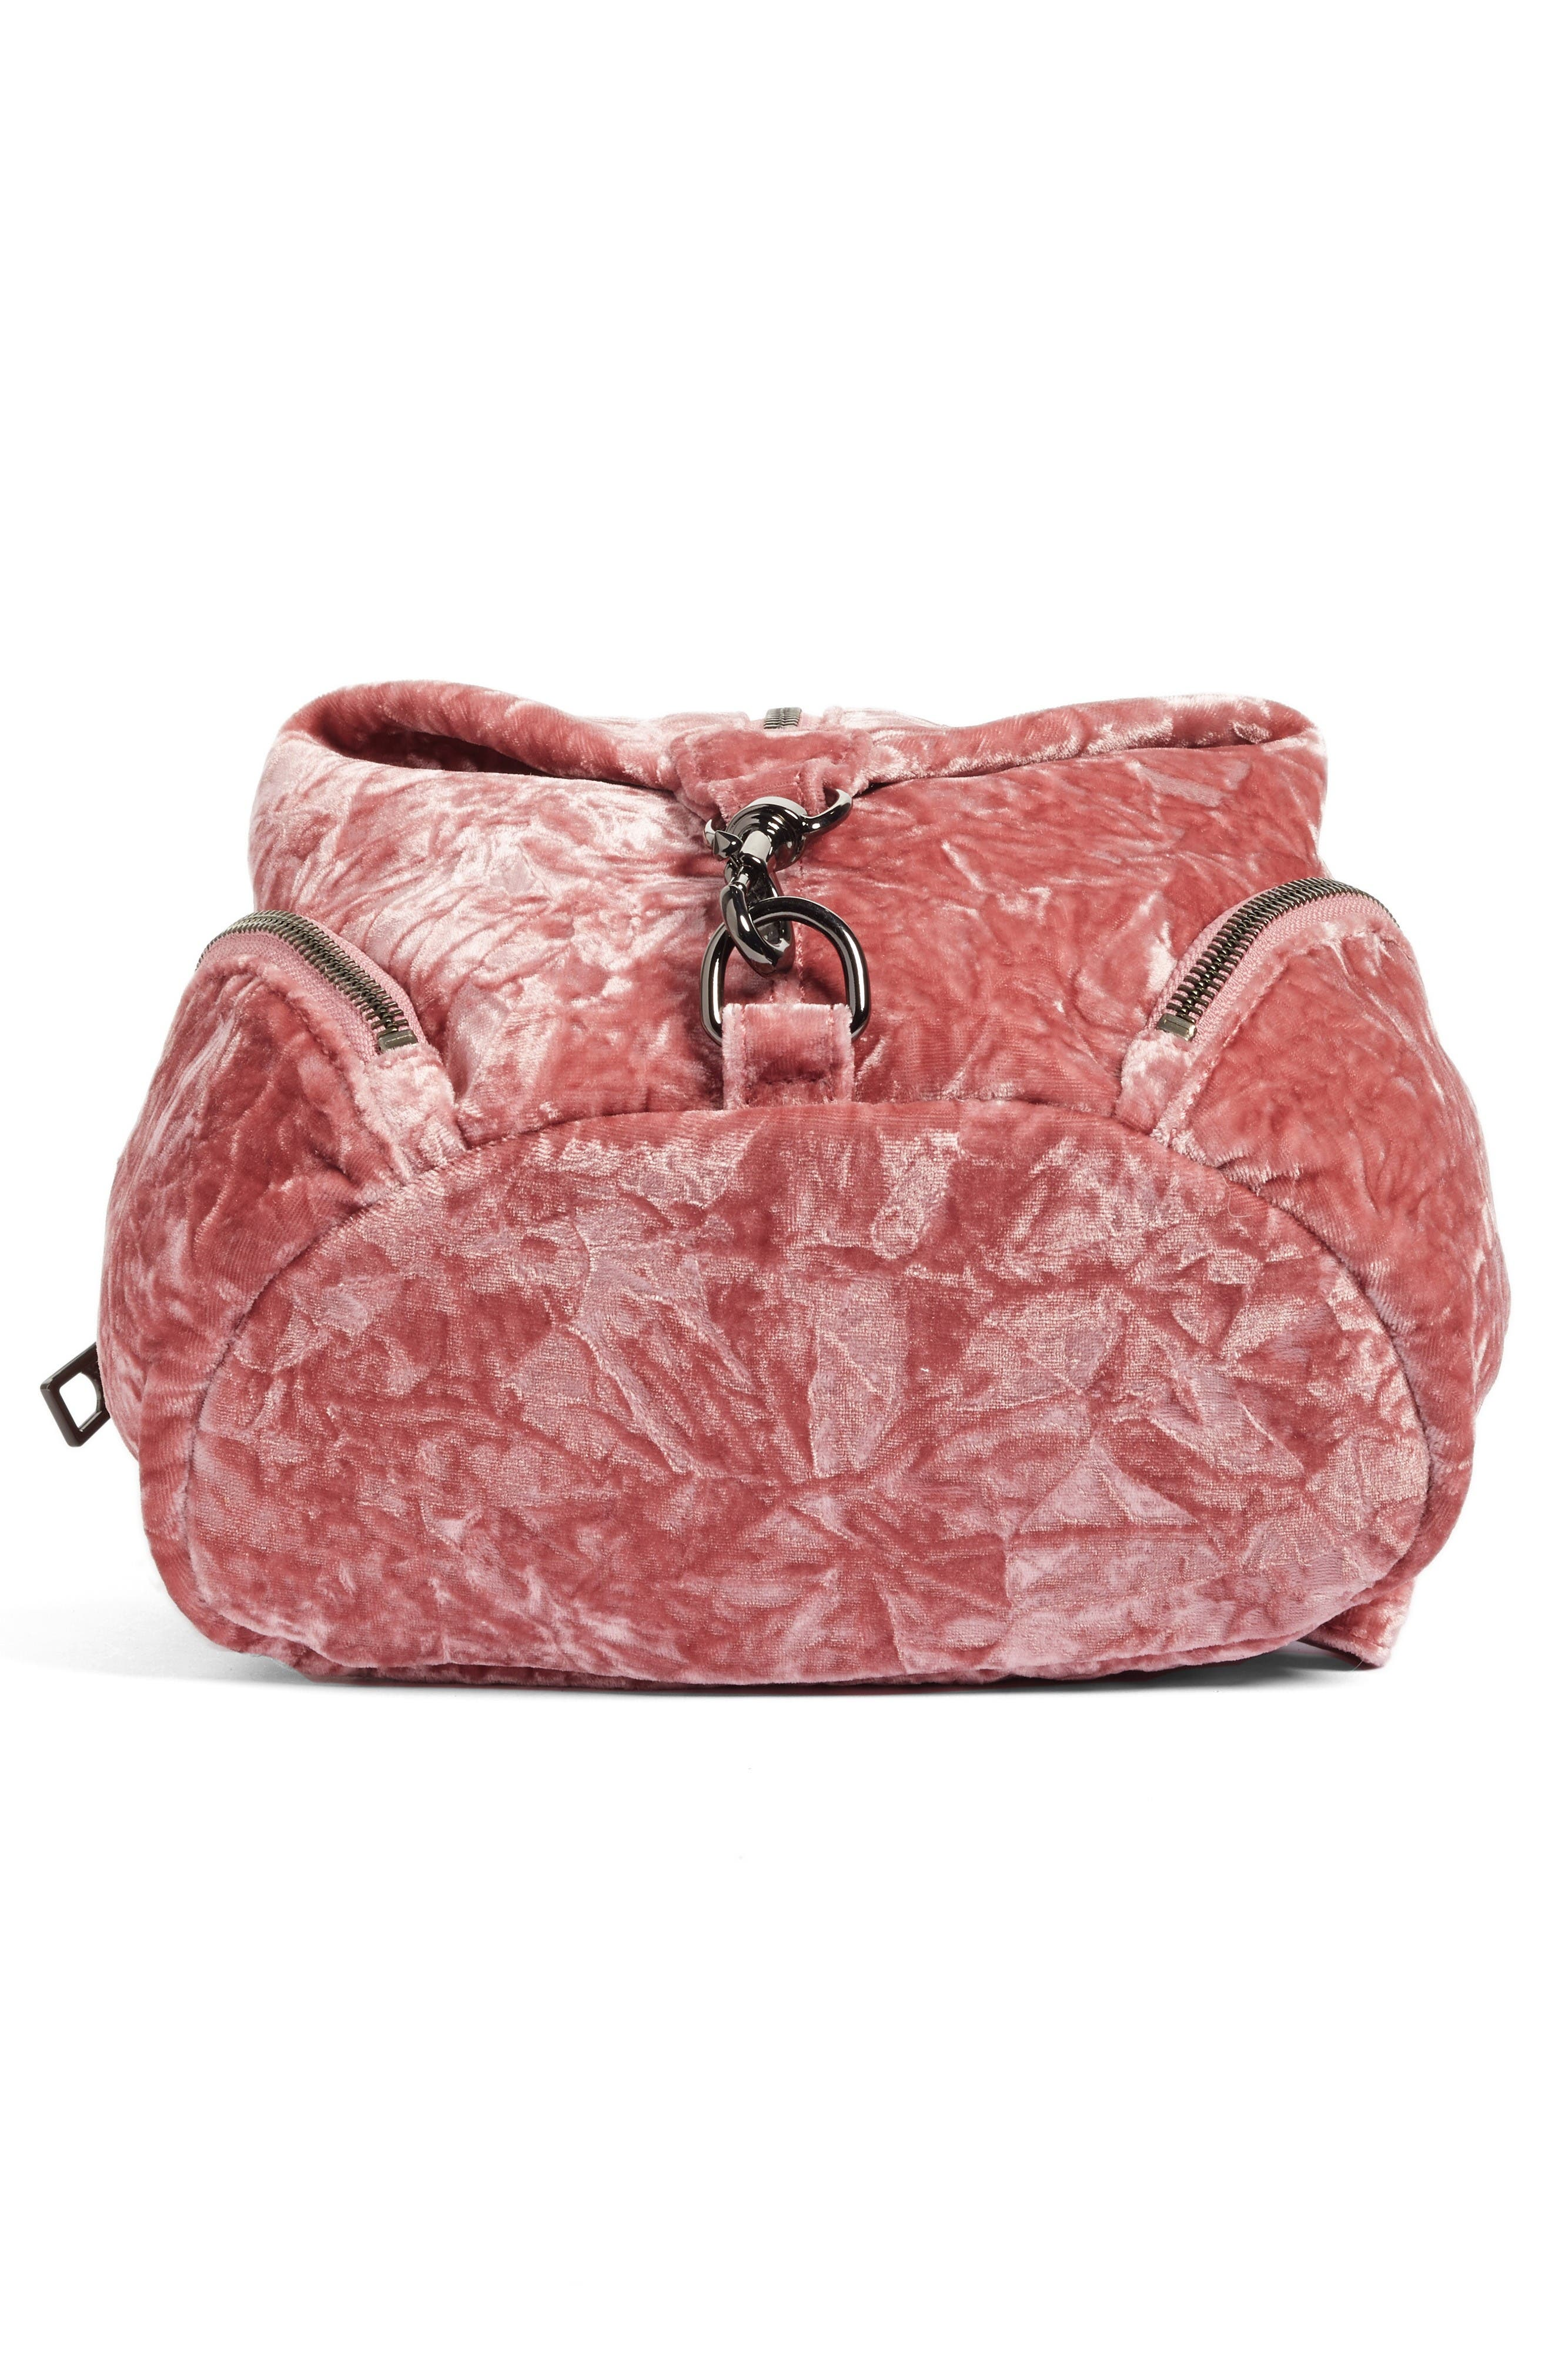 Medium Julian Velvet Backpack,                             Alternate thumbnail 7, color,                             Pink Velvet/ Gunmetal Hardware